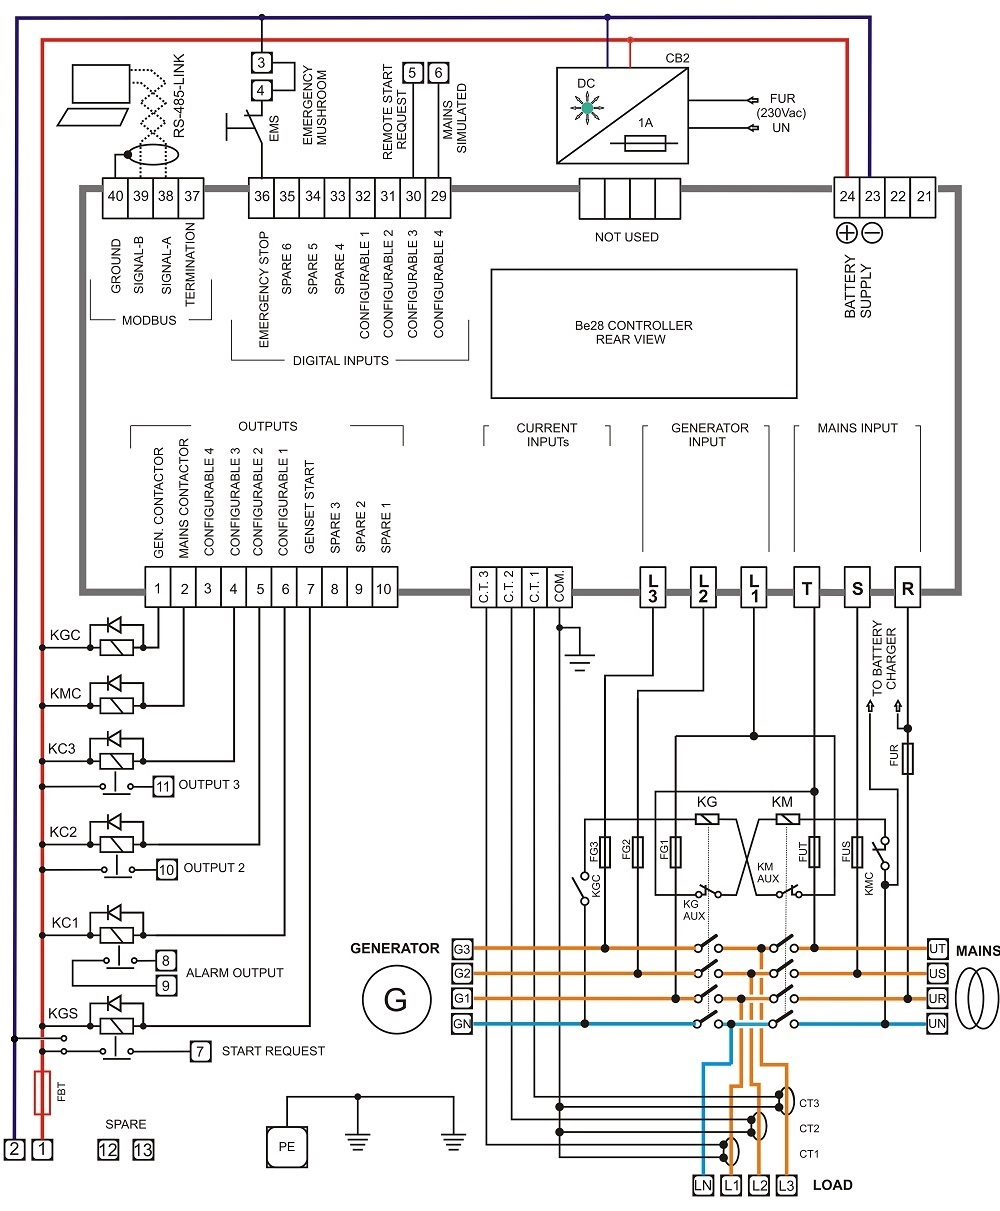 Plc Panel Wiring Diagram Pdf Sample Sub Board Download Contemporary Electrical Elaboration 1